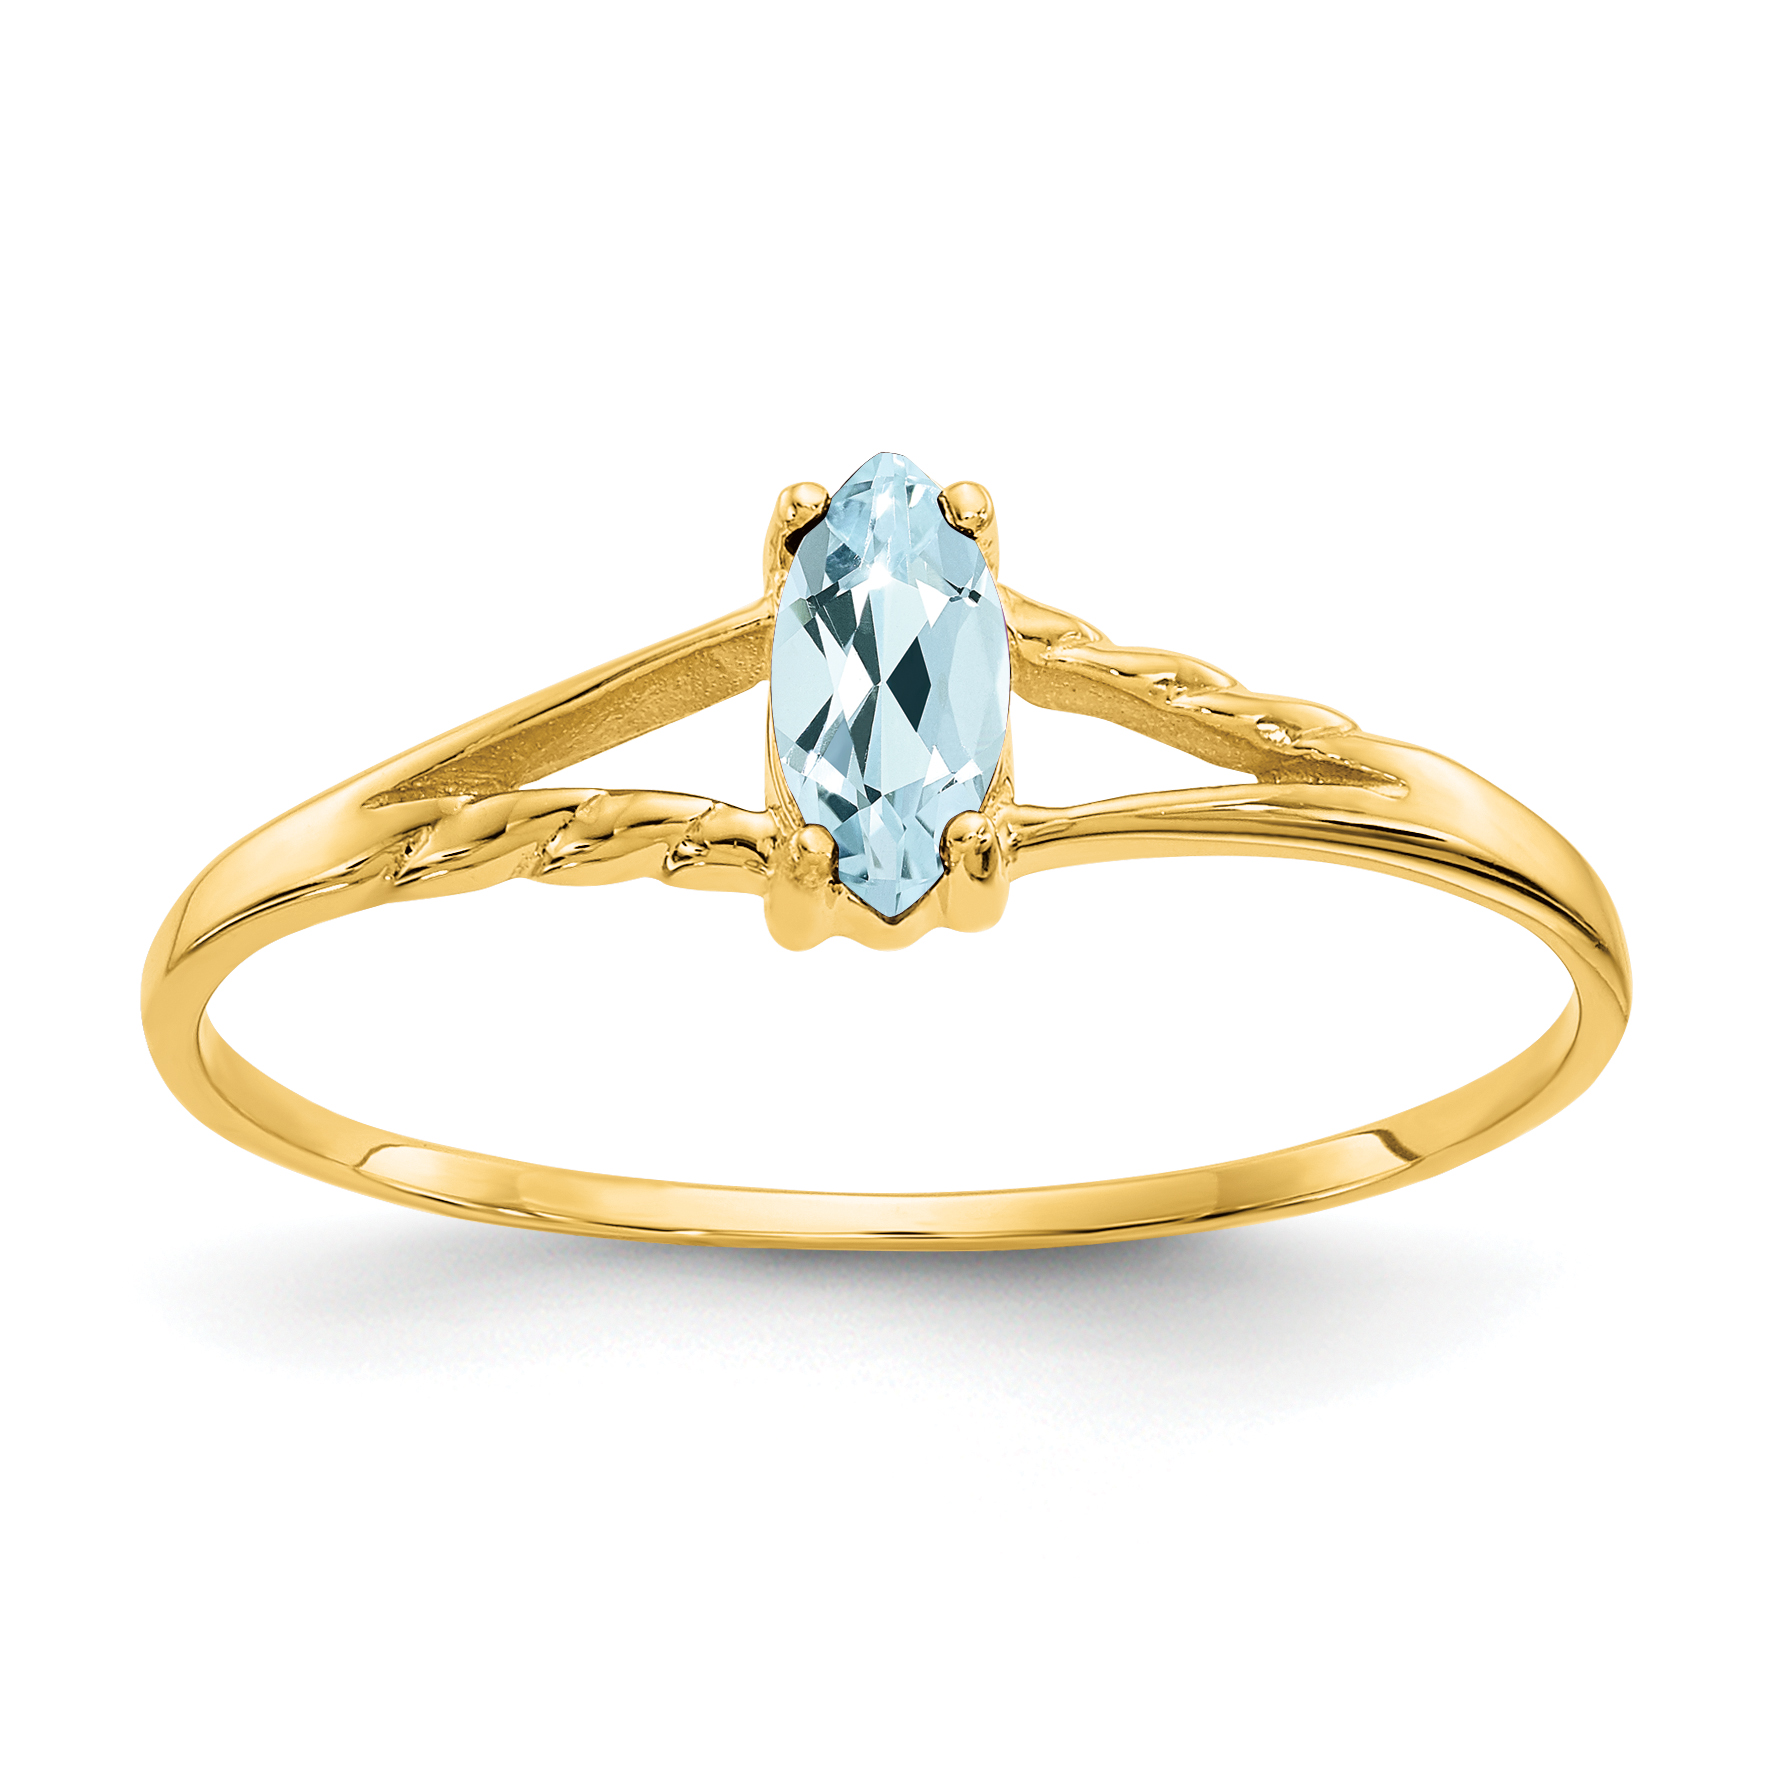 14k Yellow Gold Blue Aquamarine Birthstone Band Ring Size 7.00 March Marquise Fine Jewelry Gifts For Women For Her - image 2 de 2